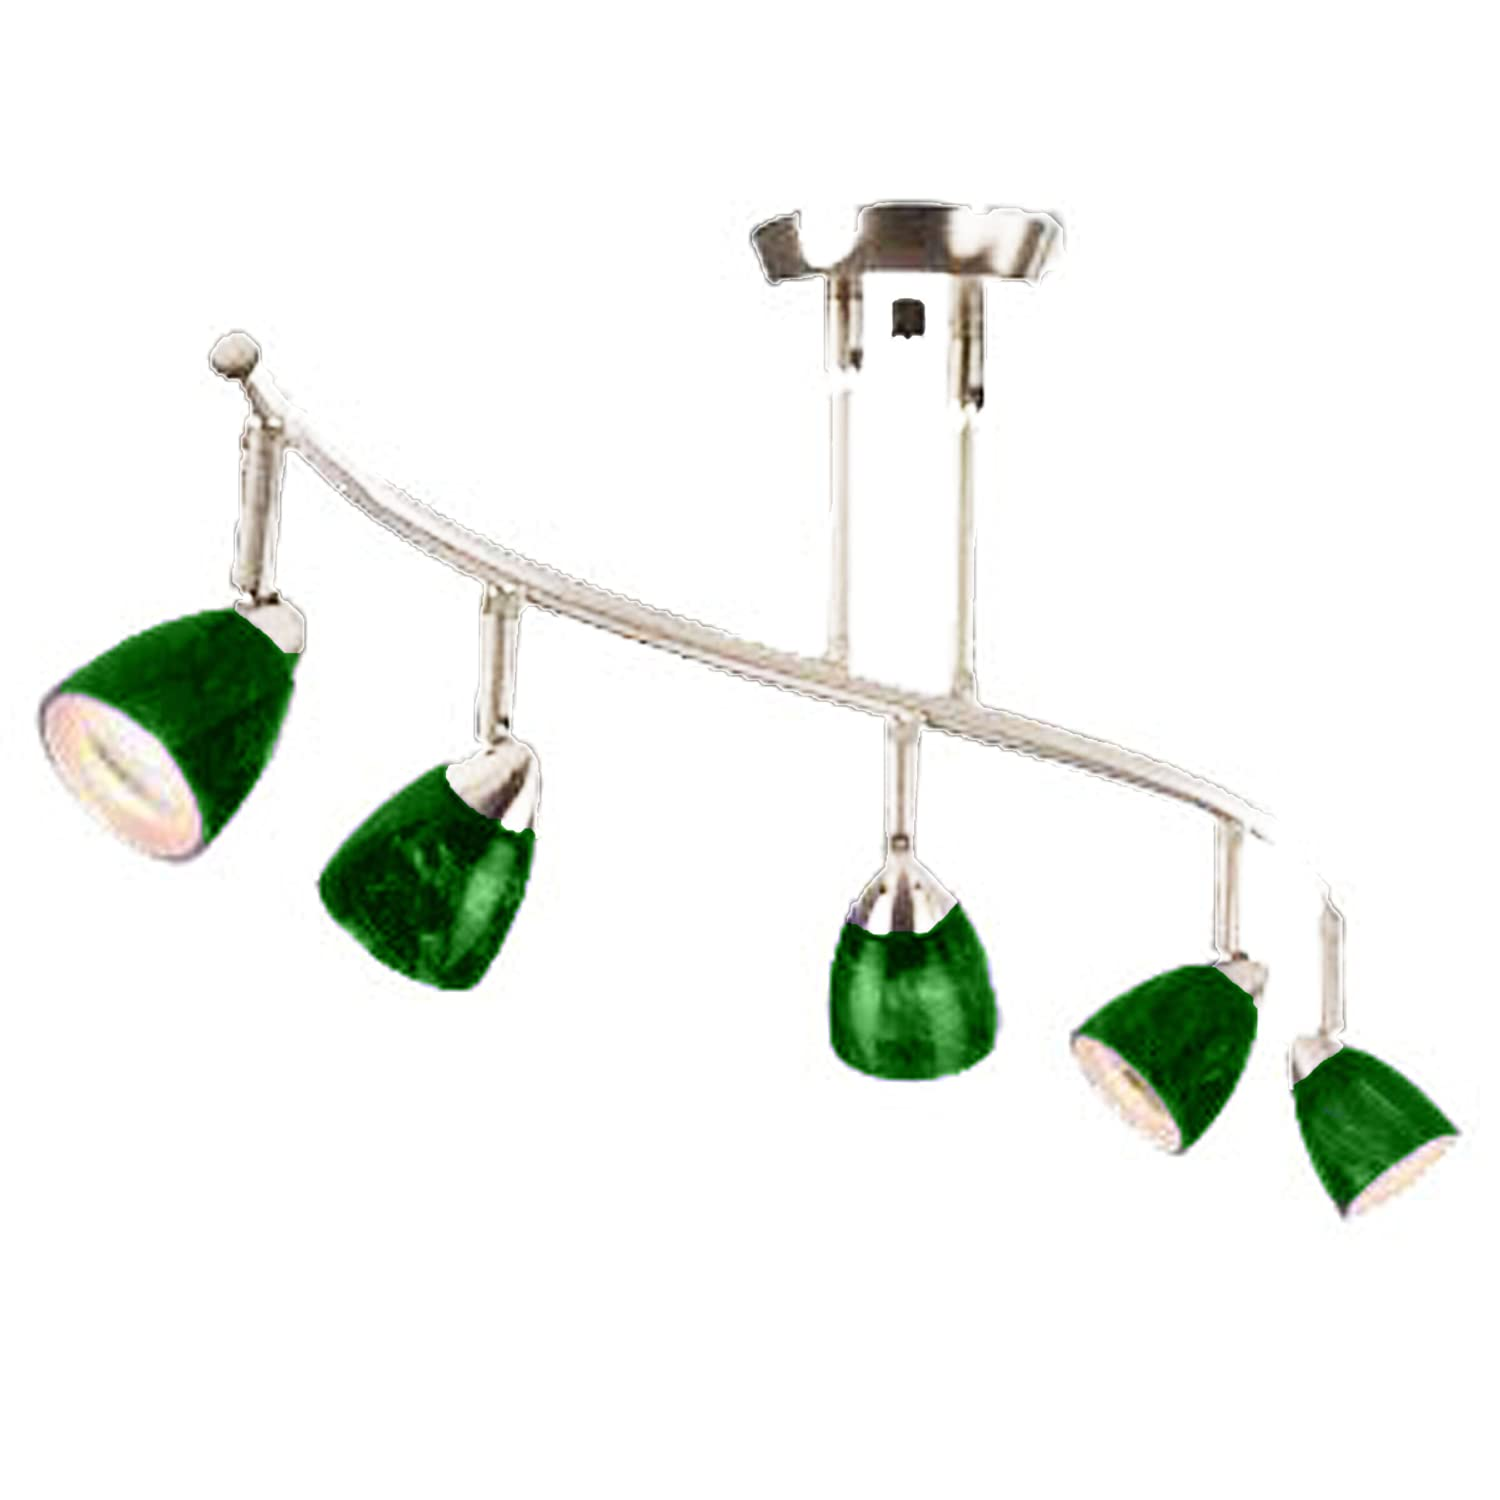 Cal Lighting SL-954-5-WH-GNF Track Lighting, Green Fire Glass & White B00D31WAI8